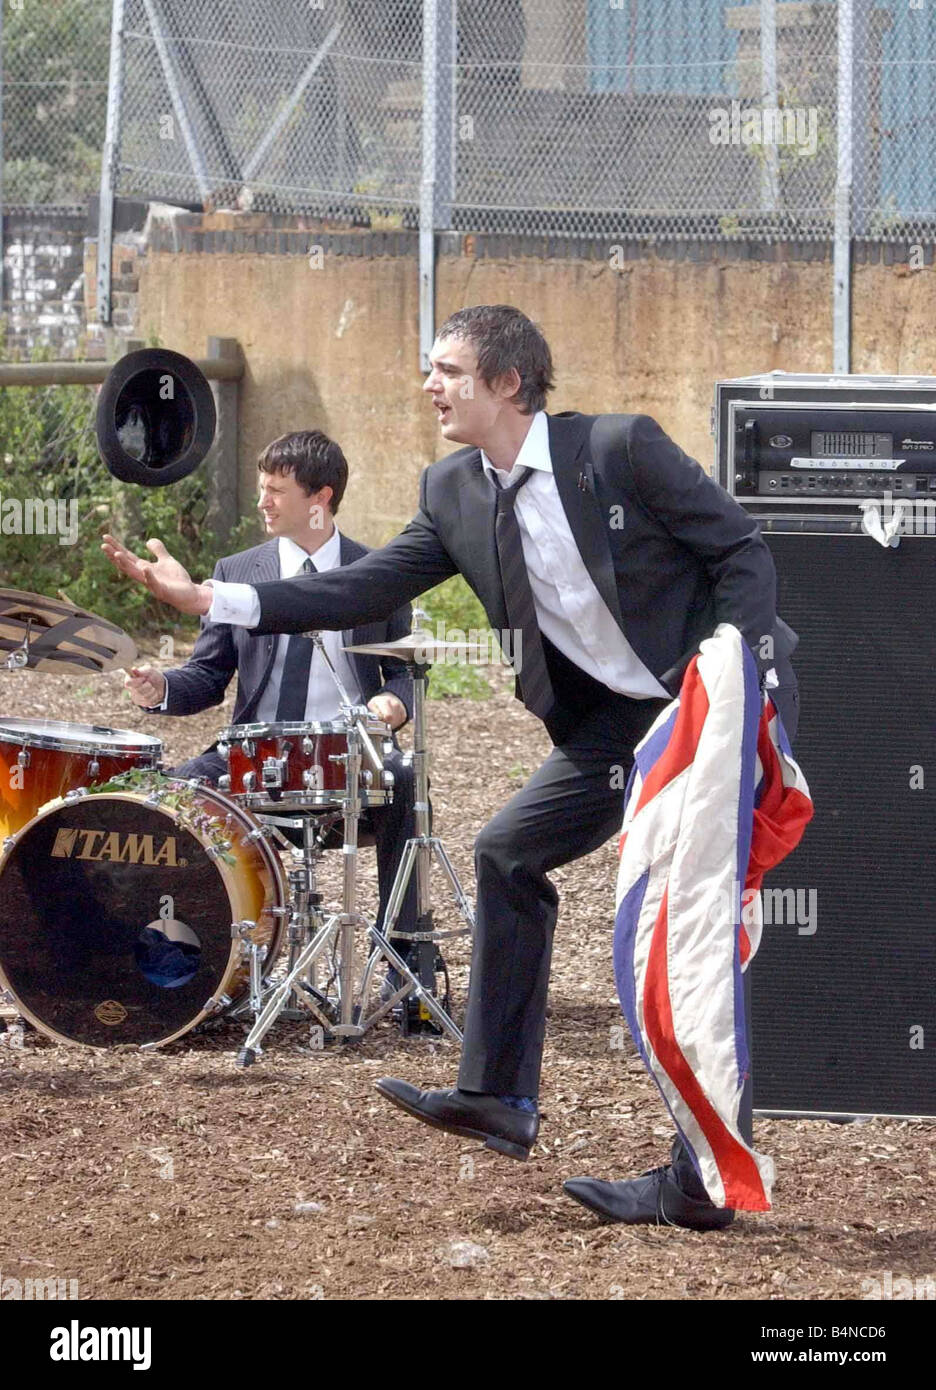 Pete Doherty records the video for a Babyshambles single filmed at Spitalfields Farm June 2005 Throwing his hat - Stock Image